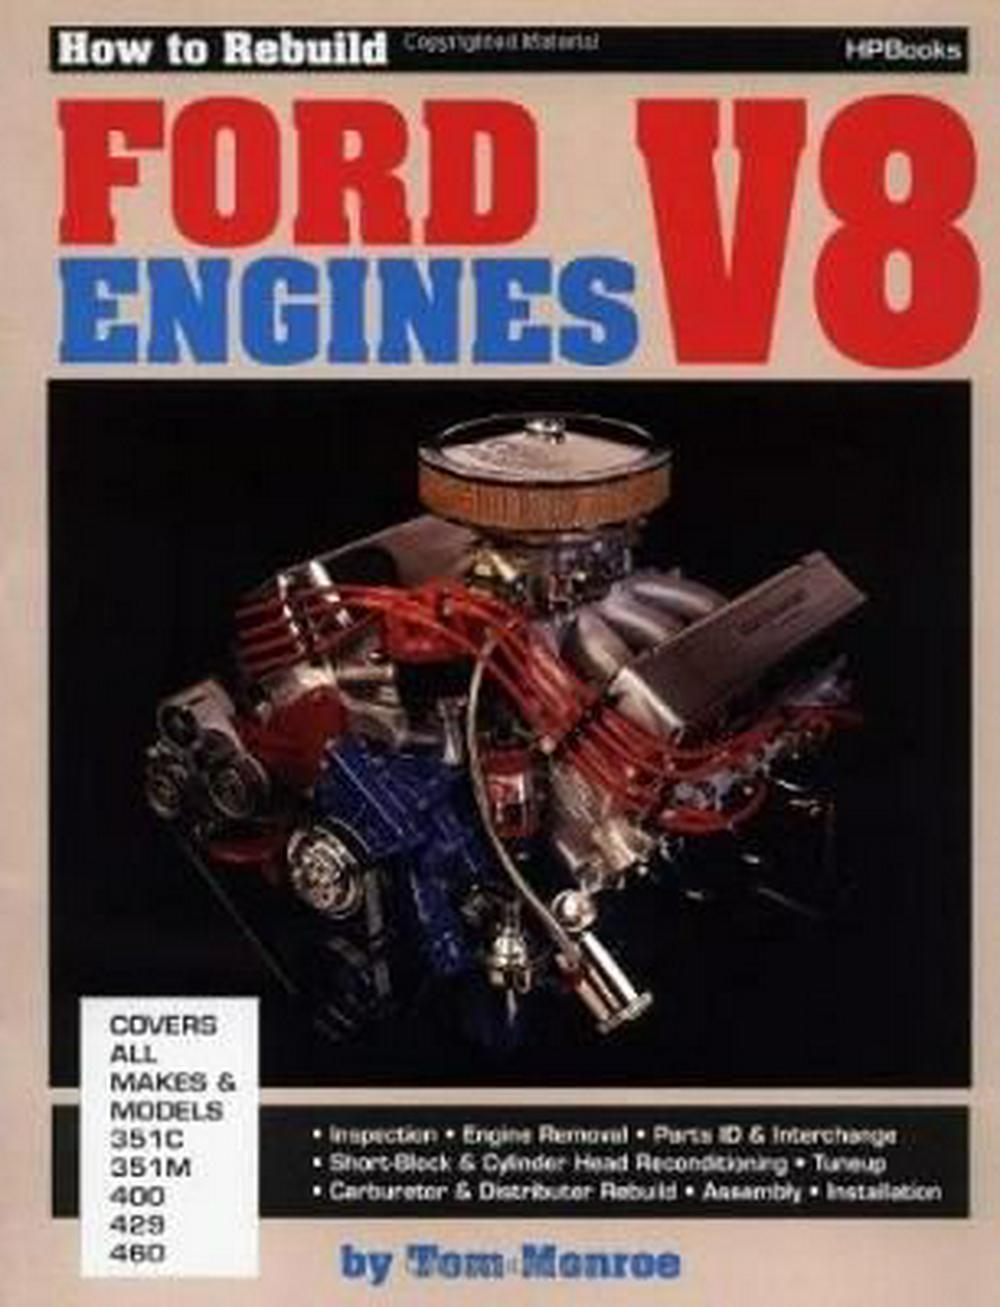 How to Rebuild Ford V-8 Engines by Tom Monroe, ISBN: 9780895860361